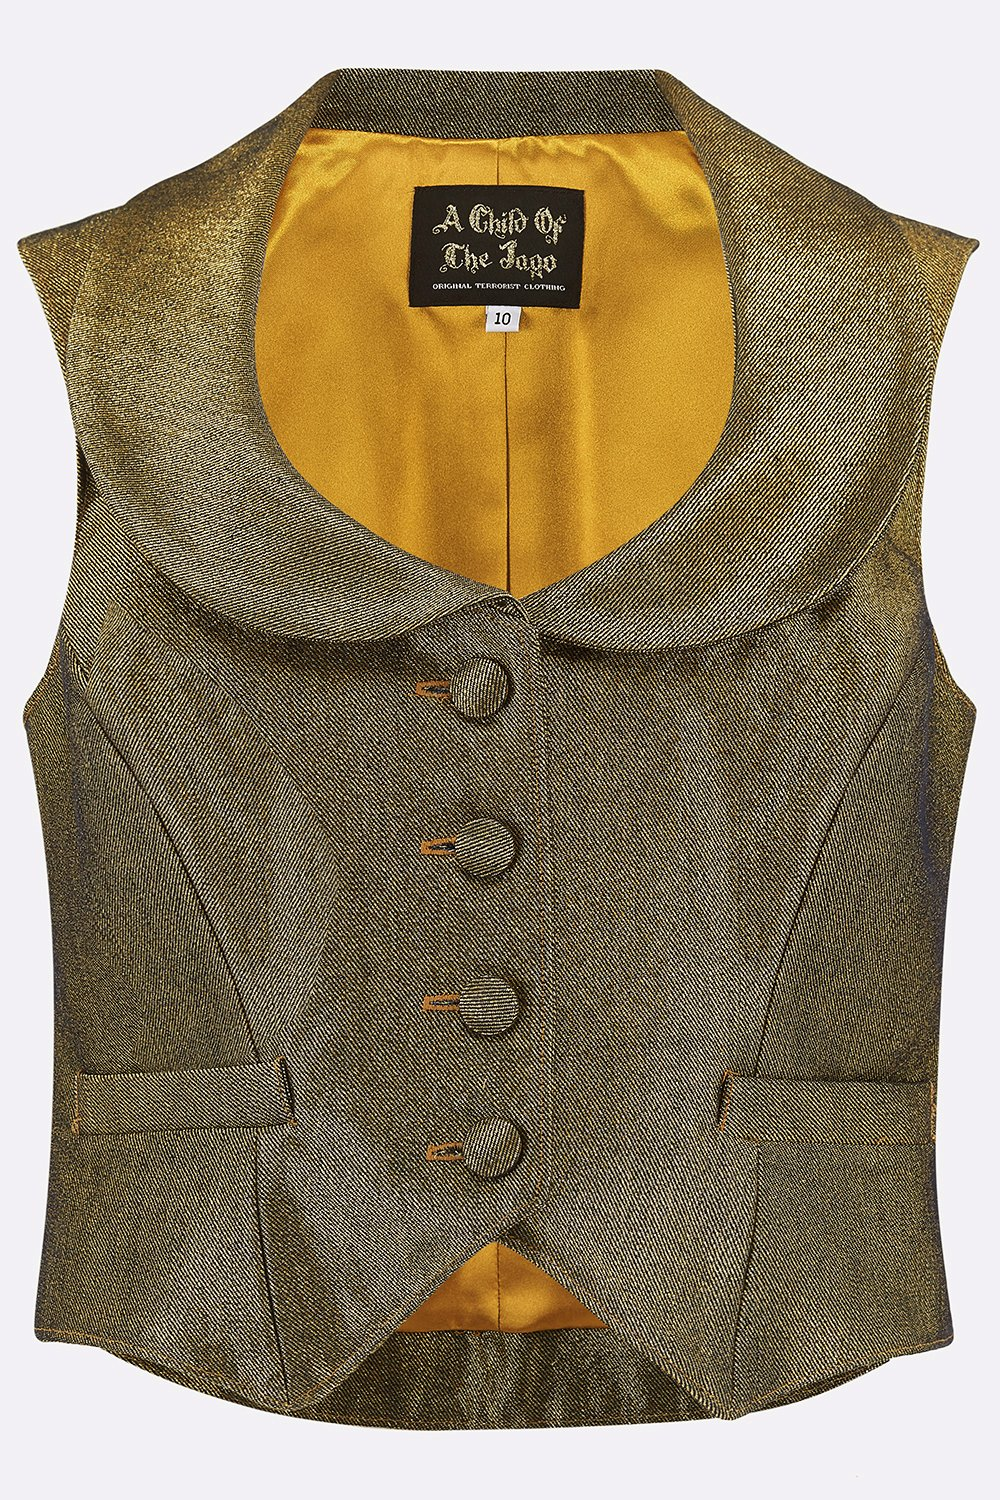 ROXANA WAISTCOAT IN GOLD DENIM-womenswear-A Child Of The Jago